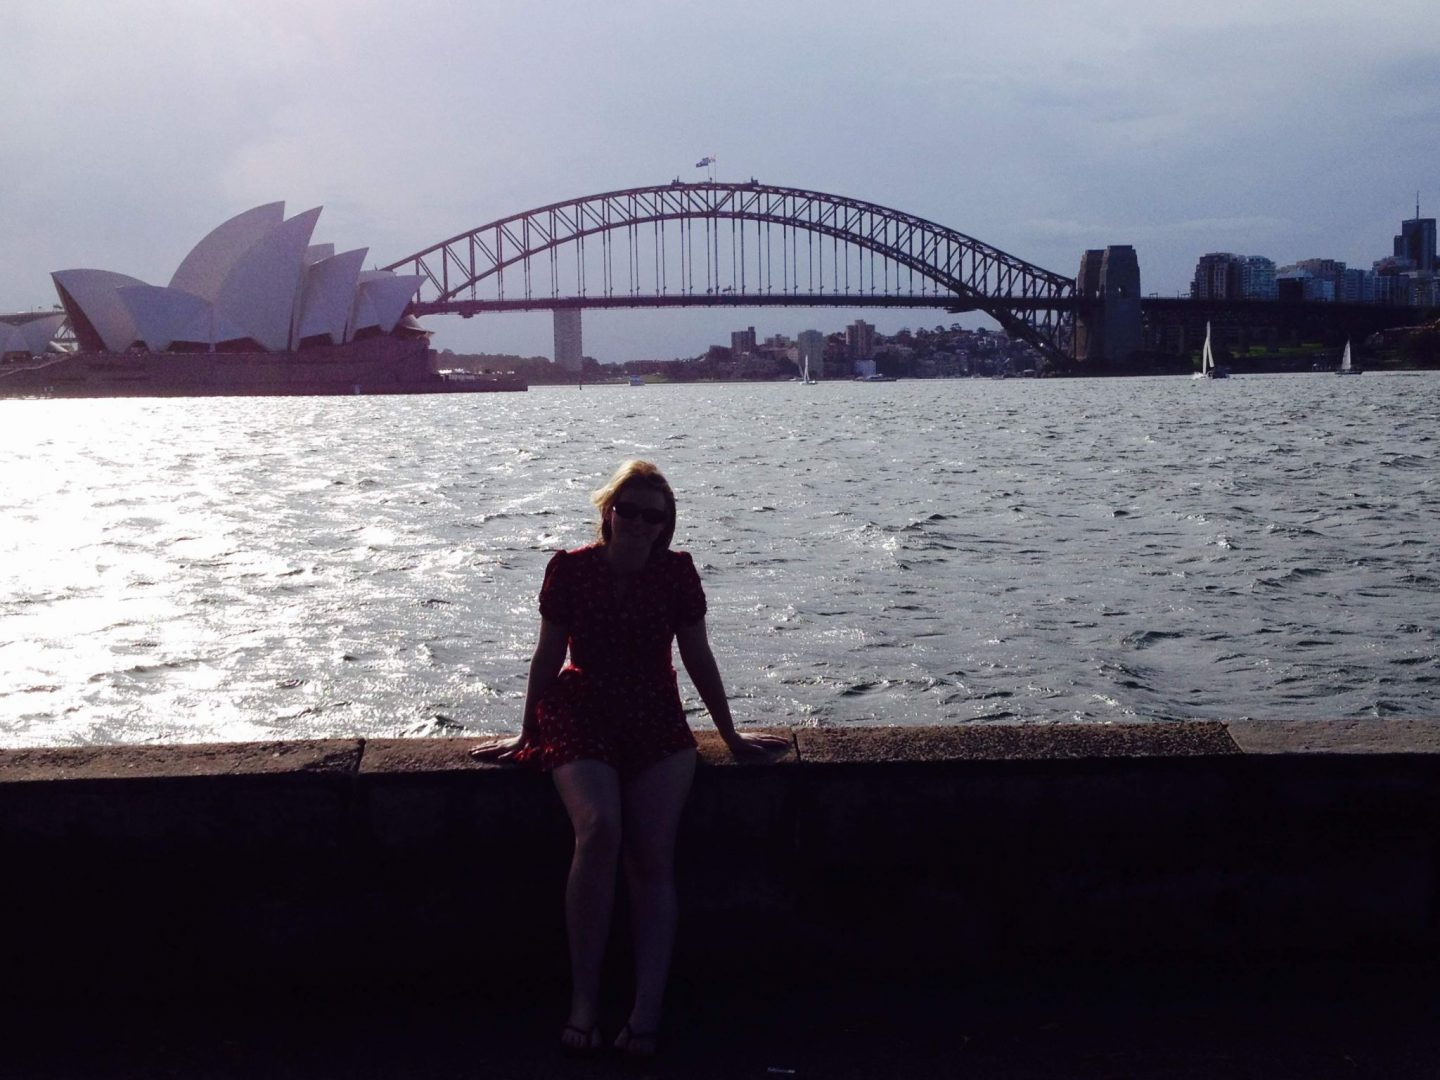 Laura in front of Sydney Harbour Bridge and Sydney Opera House